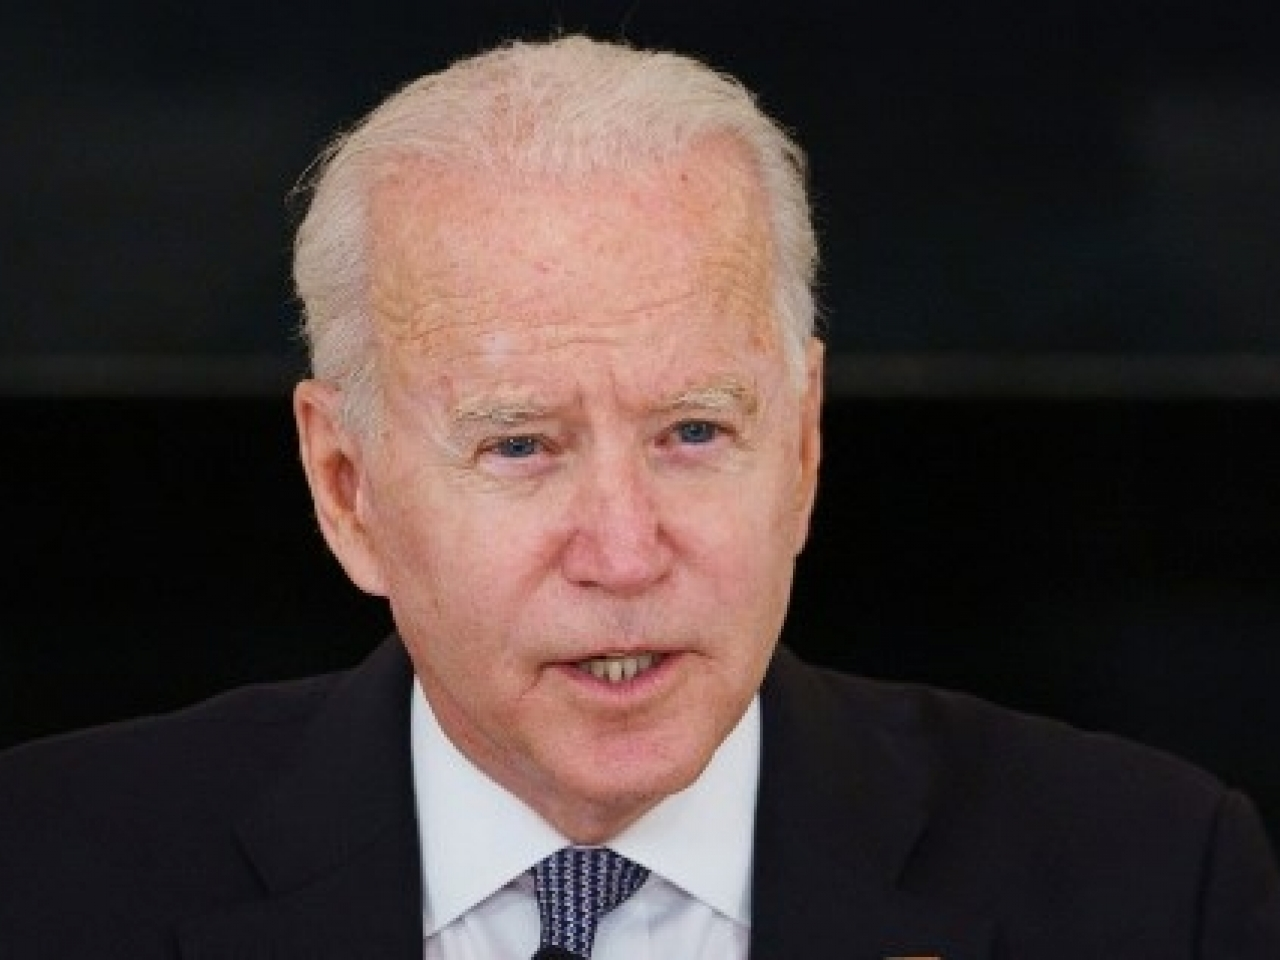 It's expected President Biden will sign a memorandum on Thursday an 18-month deferral of removal. Photo: AFP